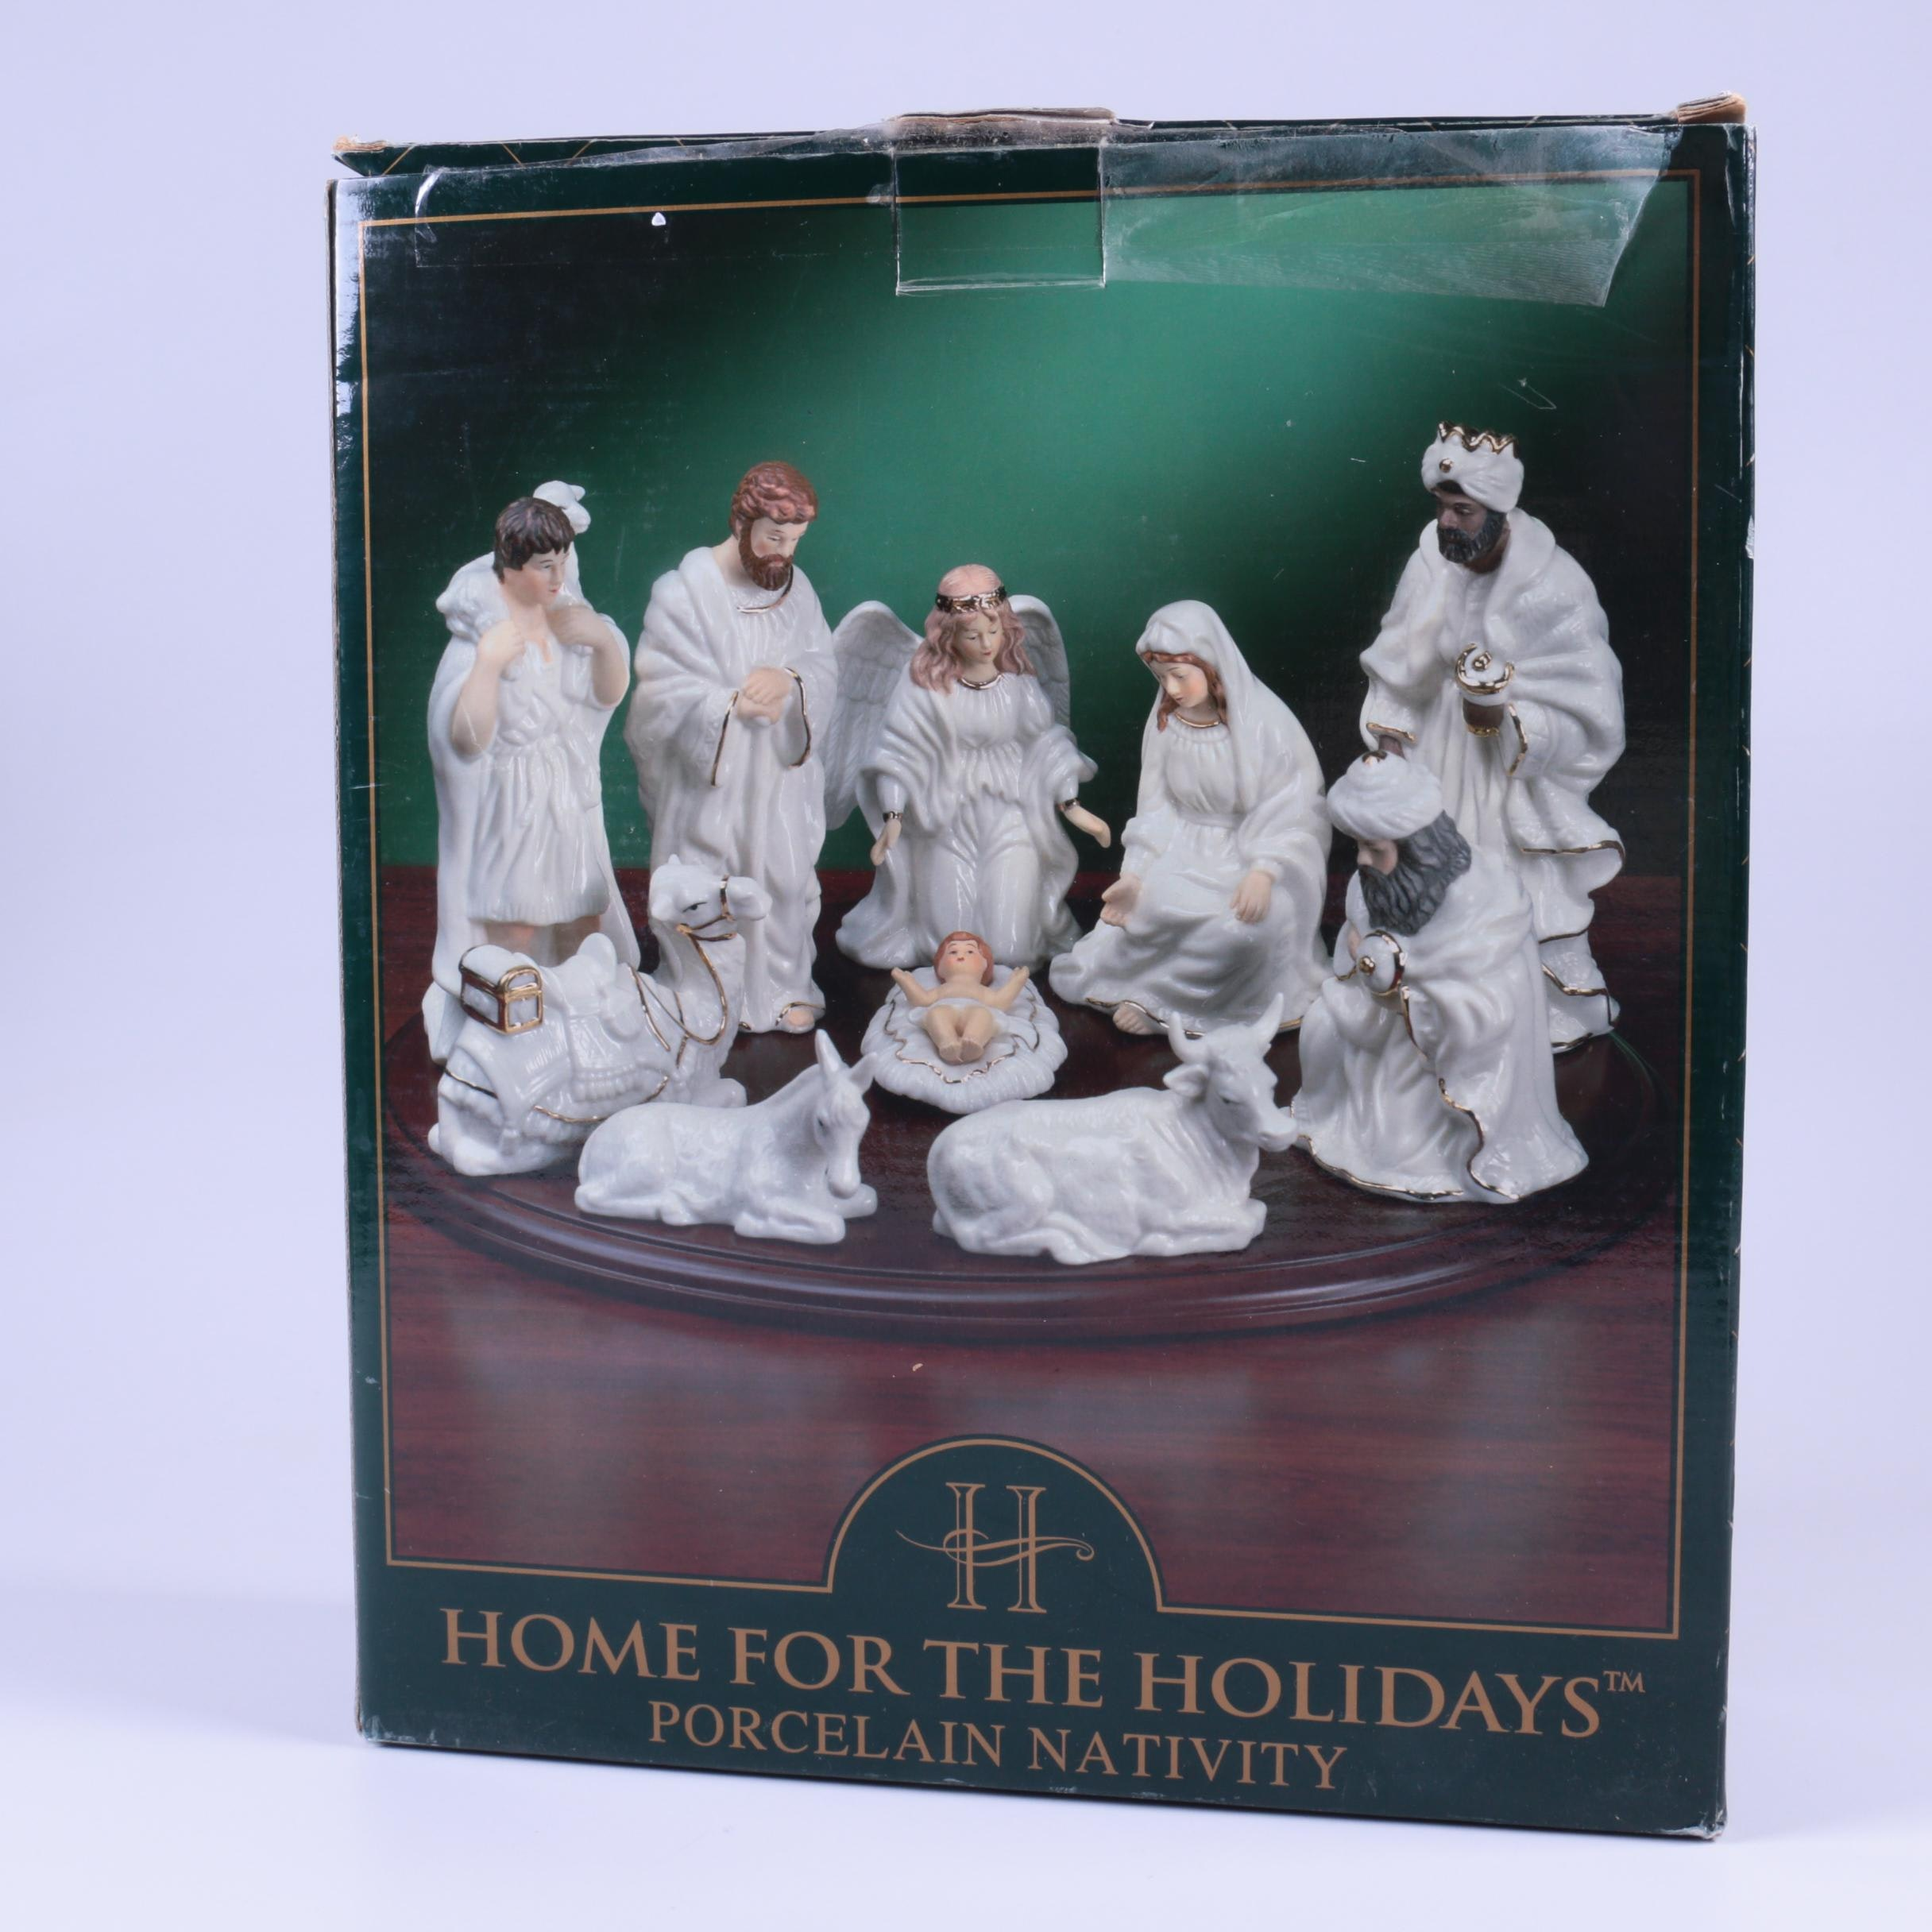 Home for the Holidays Porcelain Nativity